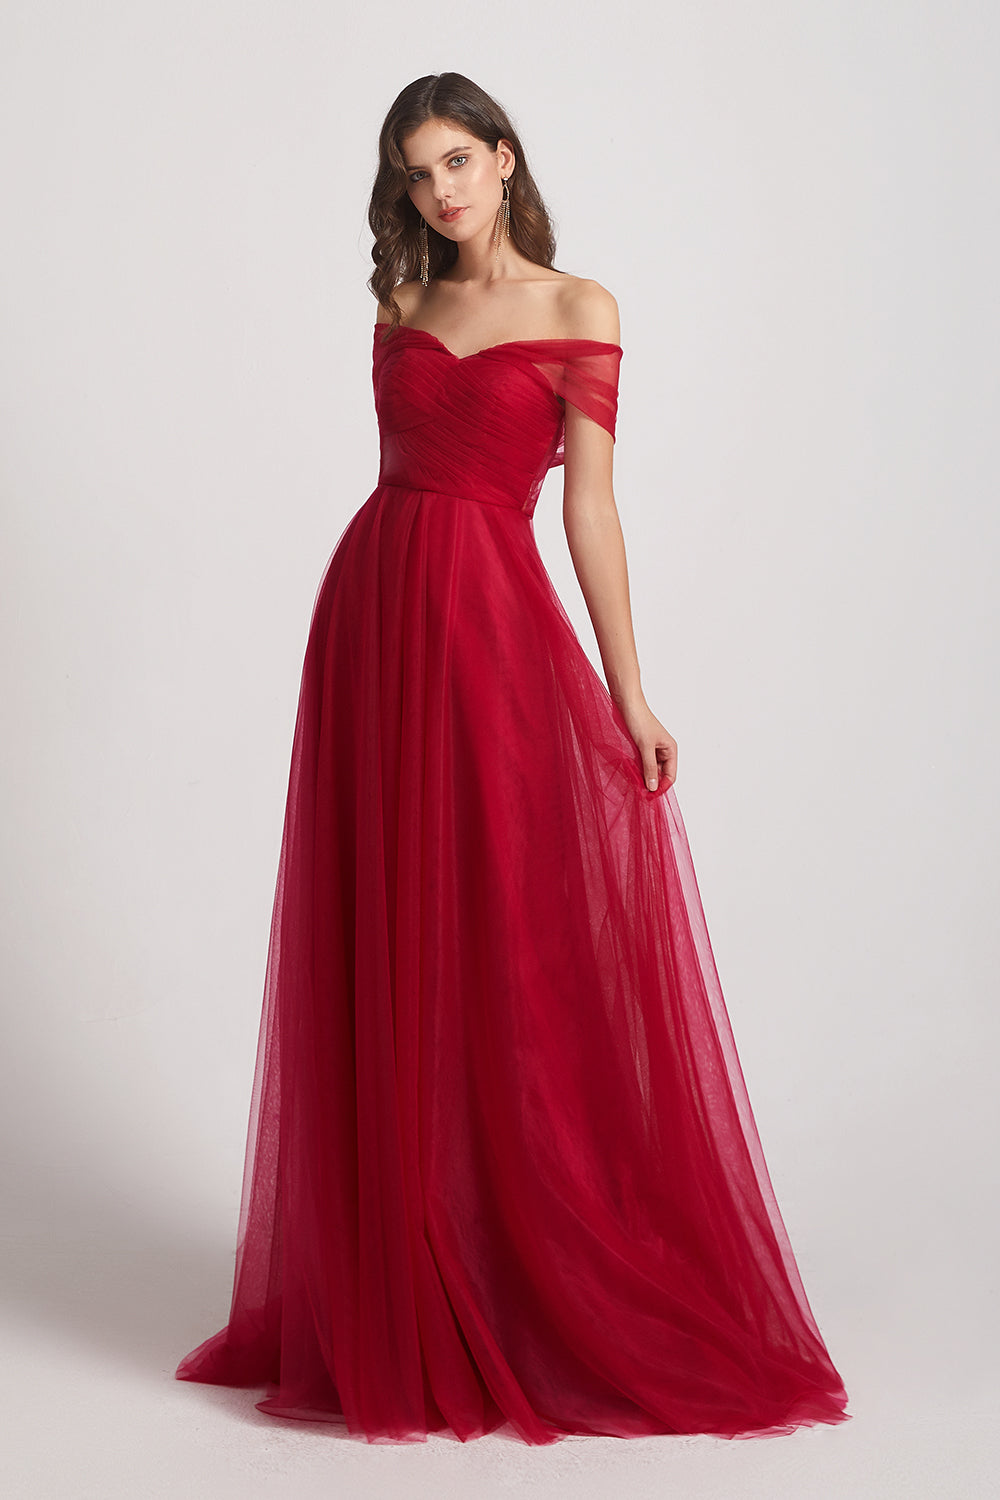 convertible red tulle  bridesmaid dress